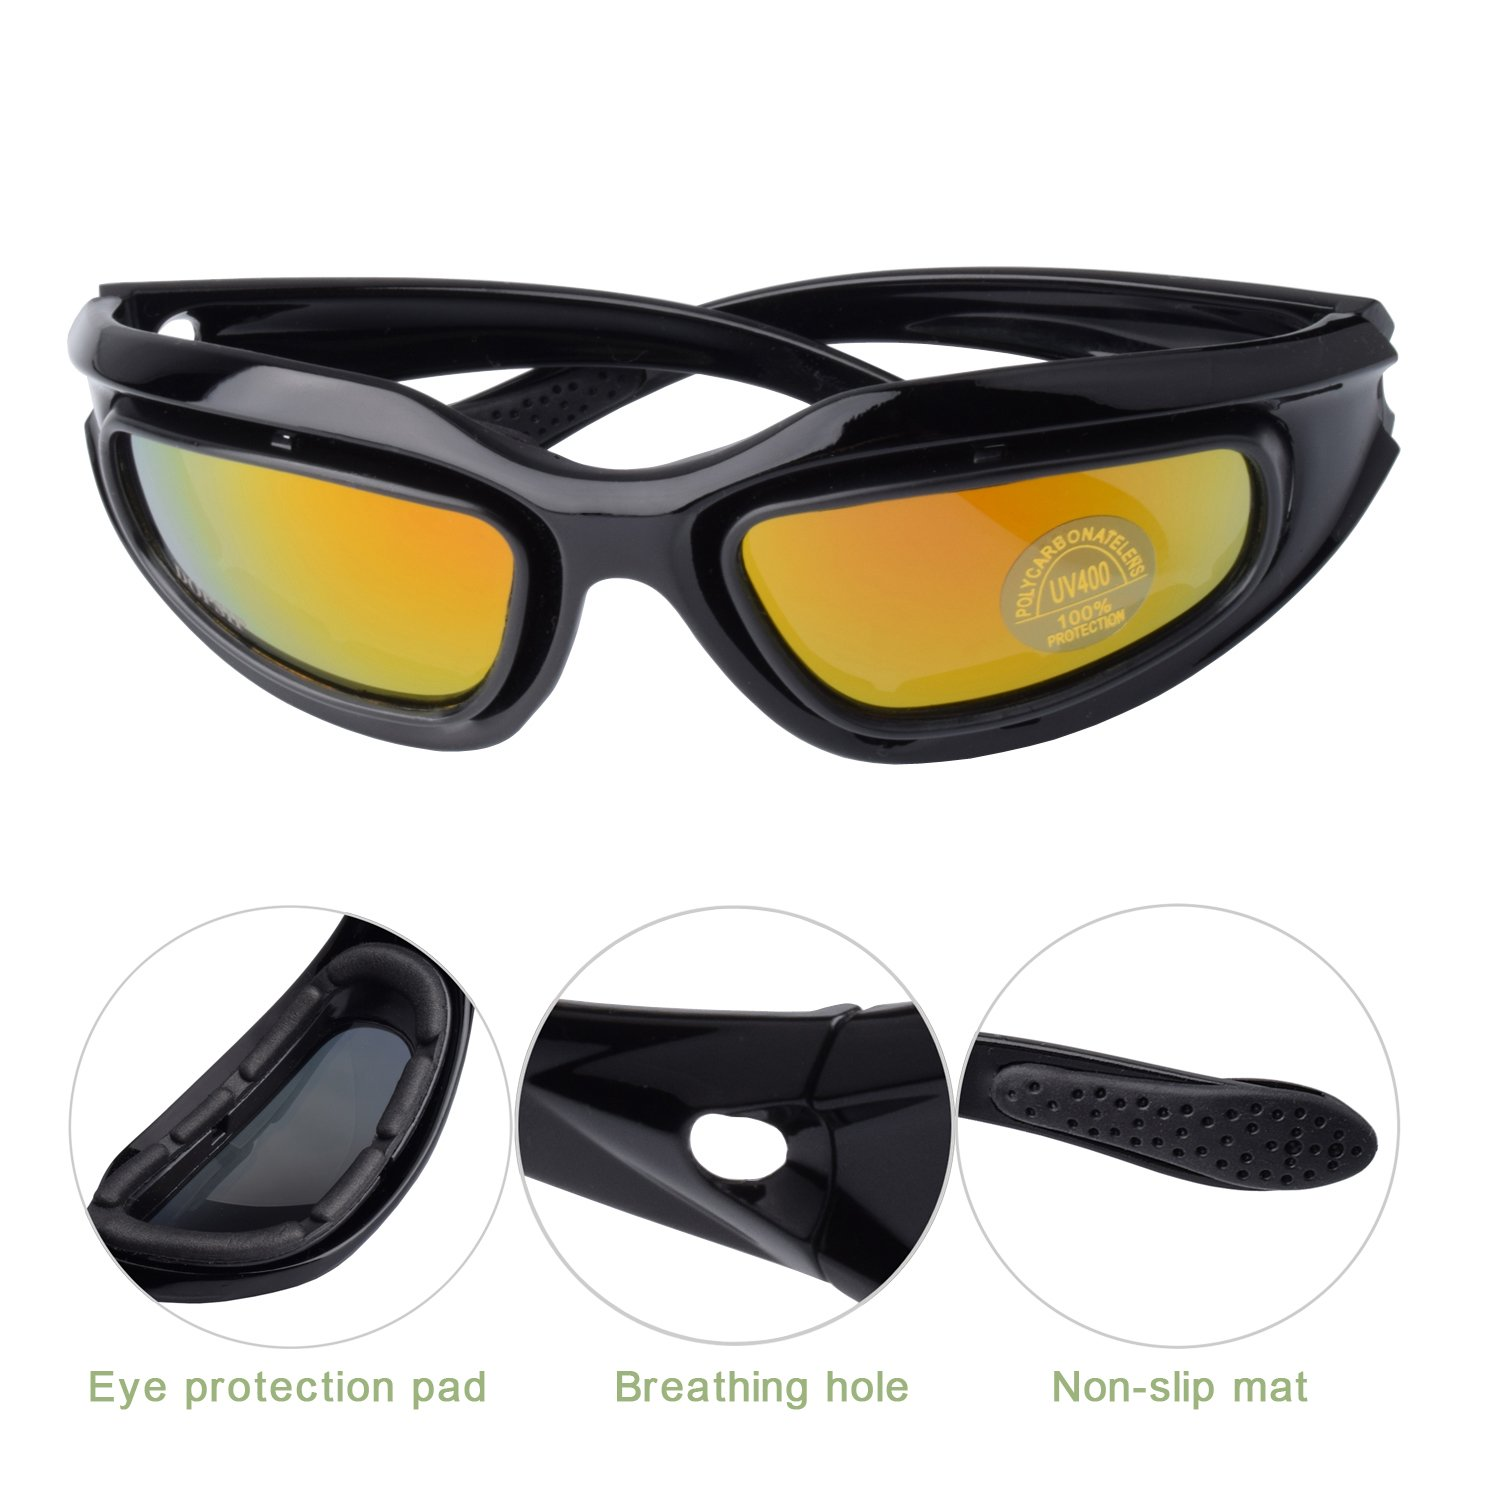 Tactical Glasses,DOPSIP Cycling Glases Protective Military Goggle with 4 Replaceable Lenses (Black) by DOPSIP (Image #4)